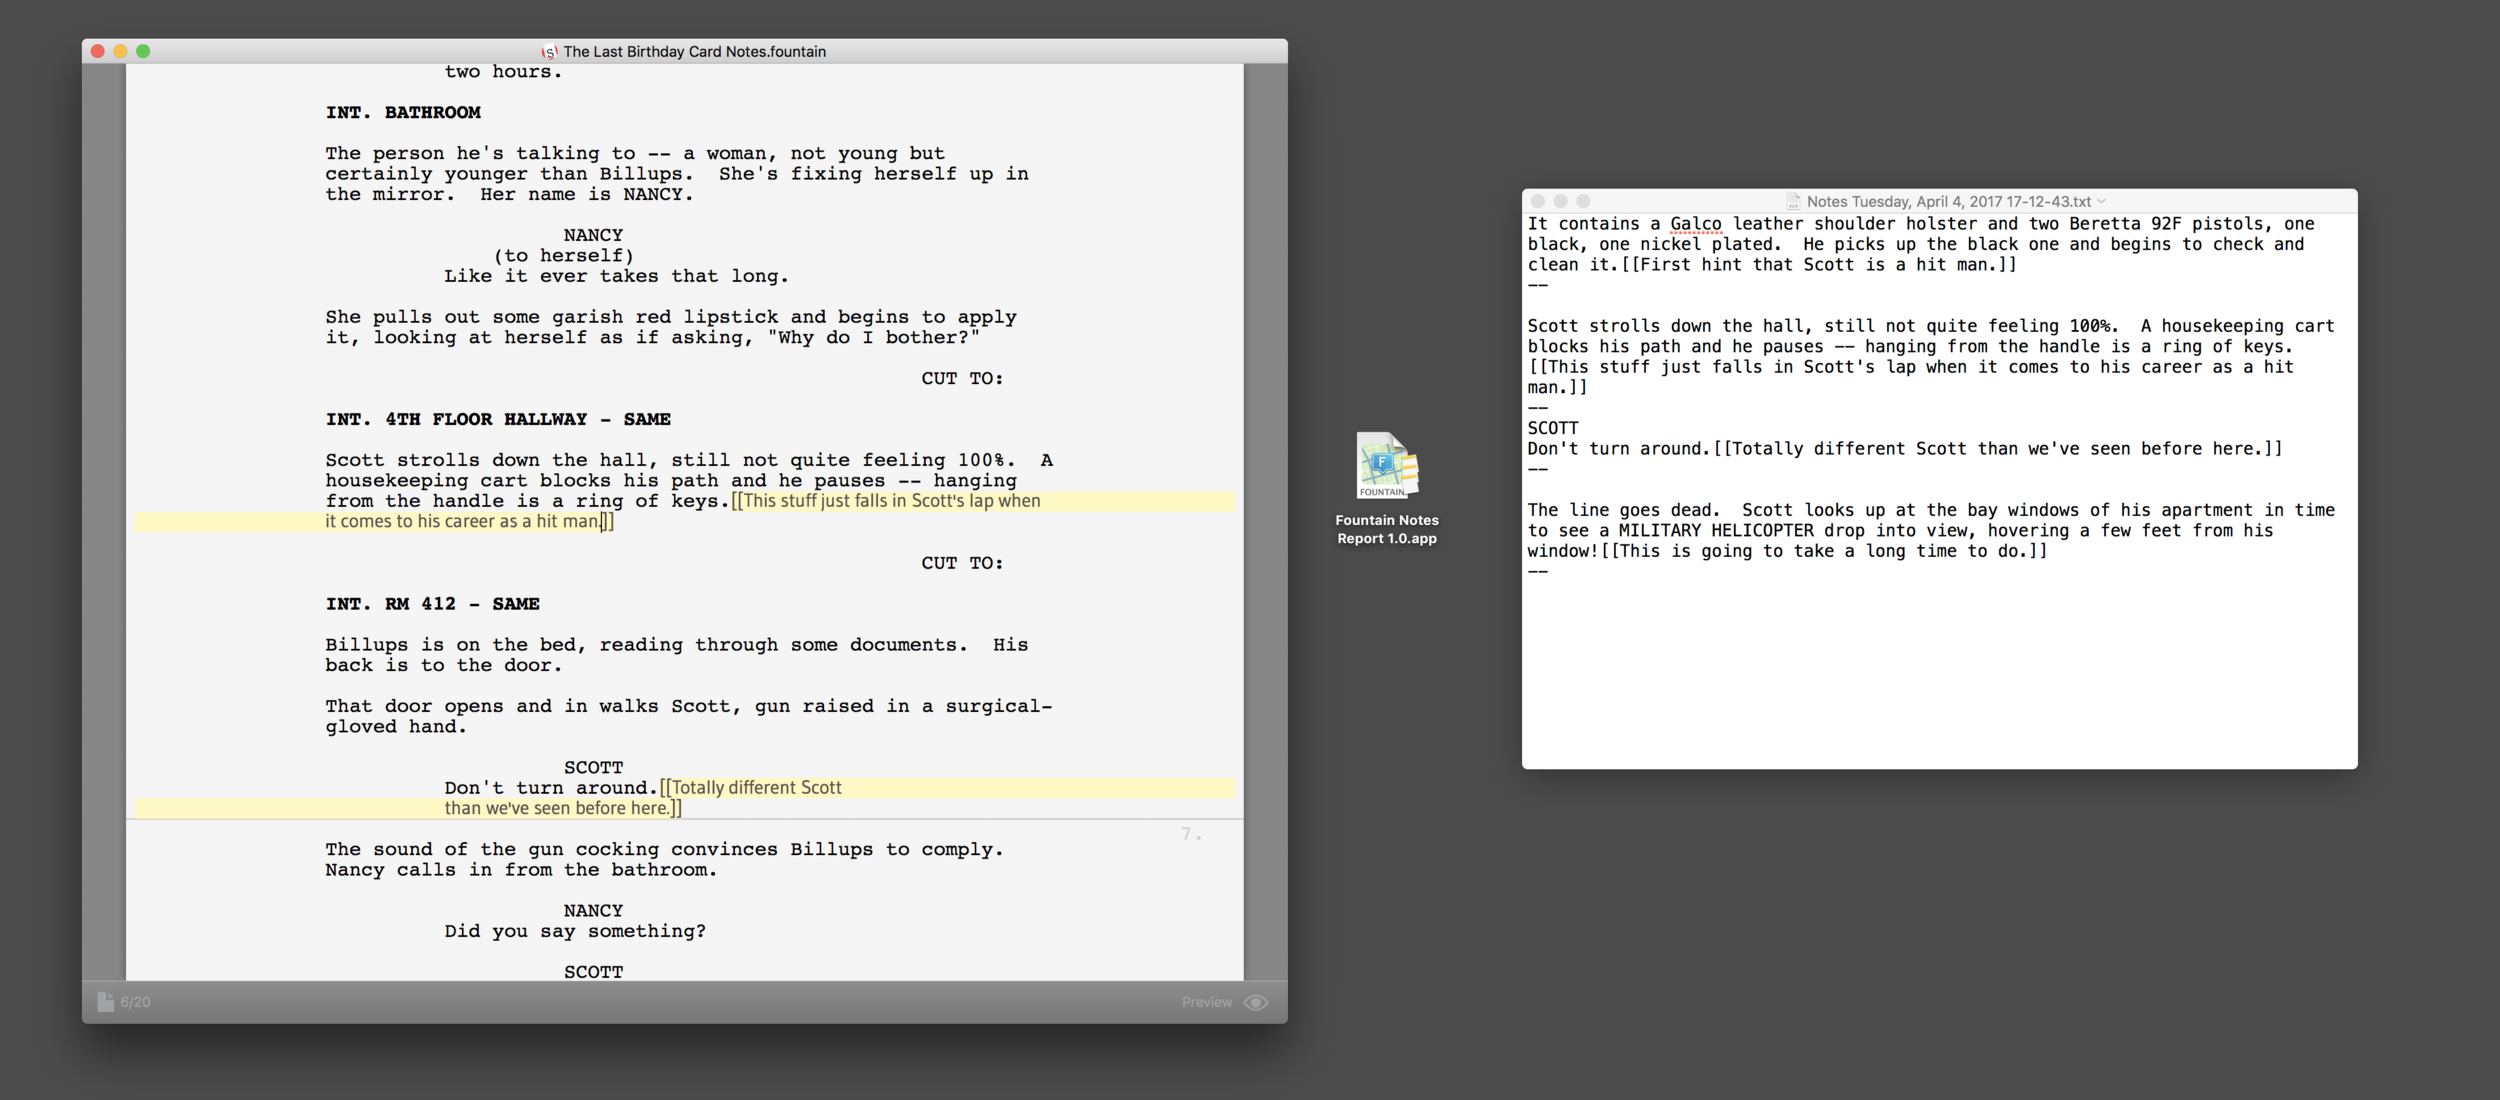 Fountain screenplay on the left, just the Notes on the right.